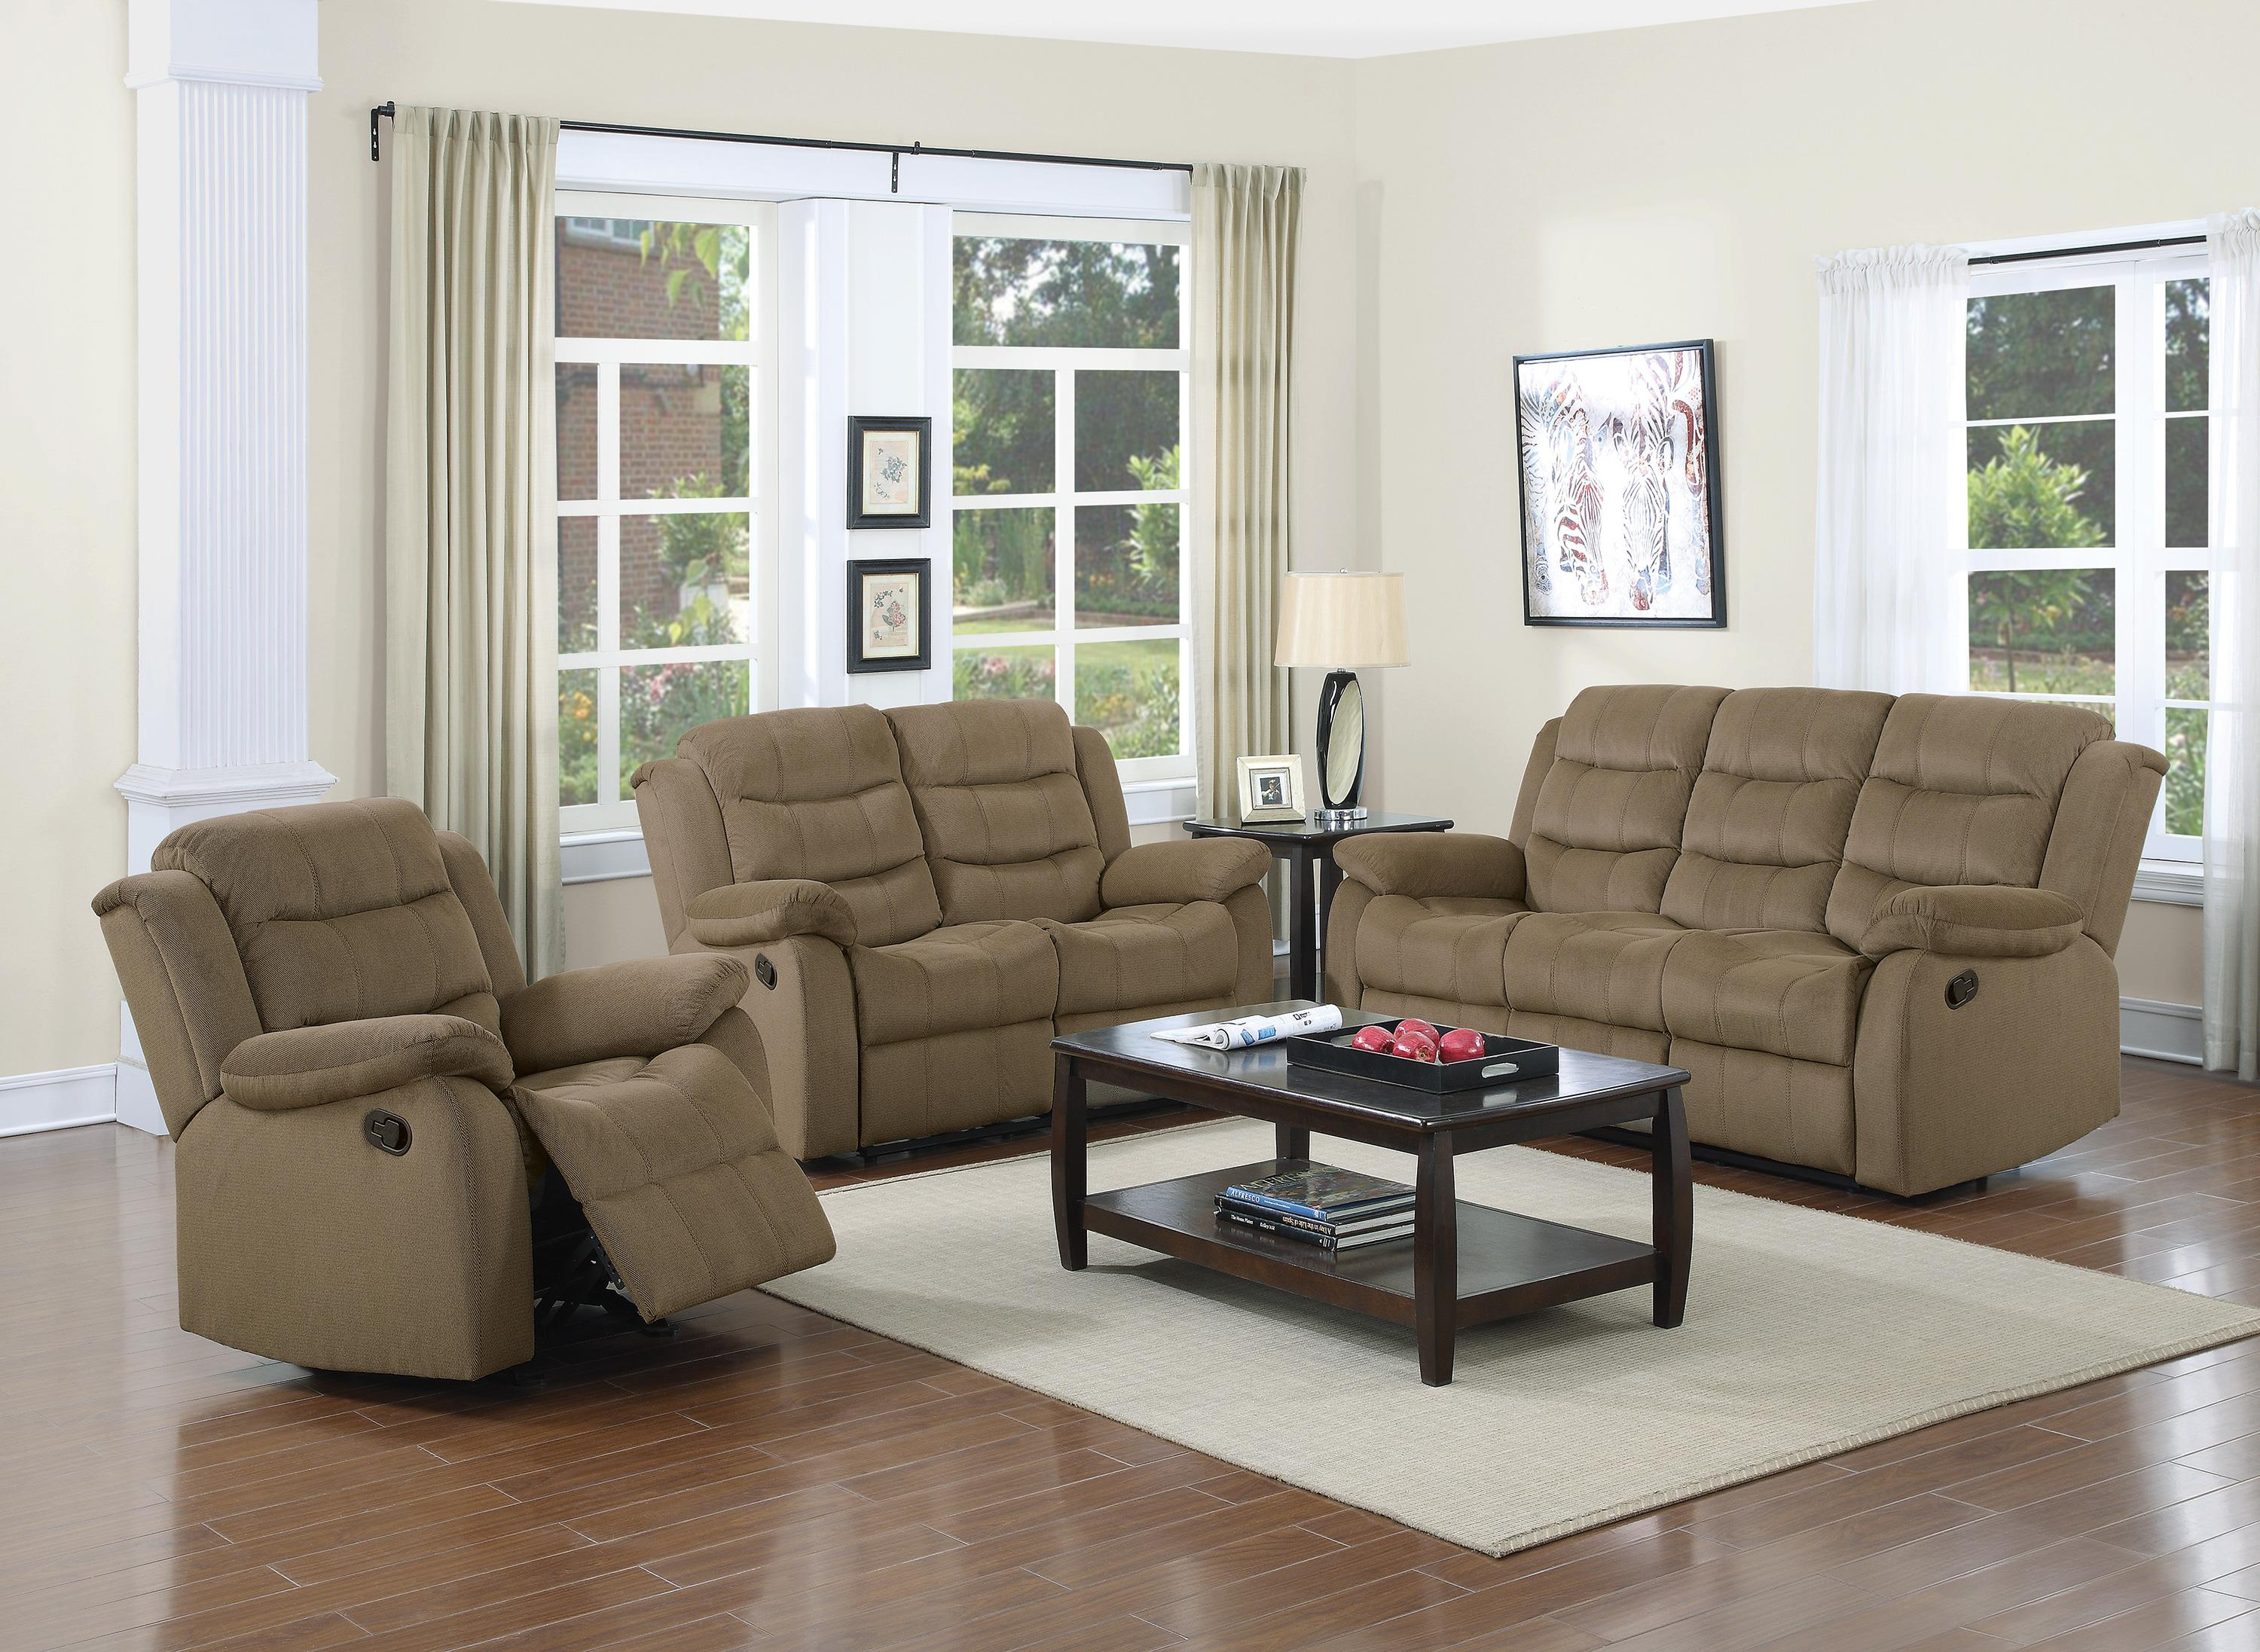 Two Loveseat Living Room Coaster Rodman Casual Motion Sofa With Pillow Arms Coaster Fine